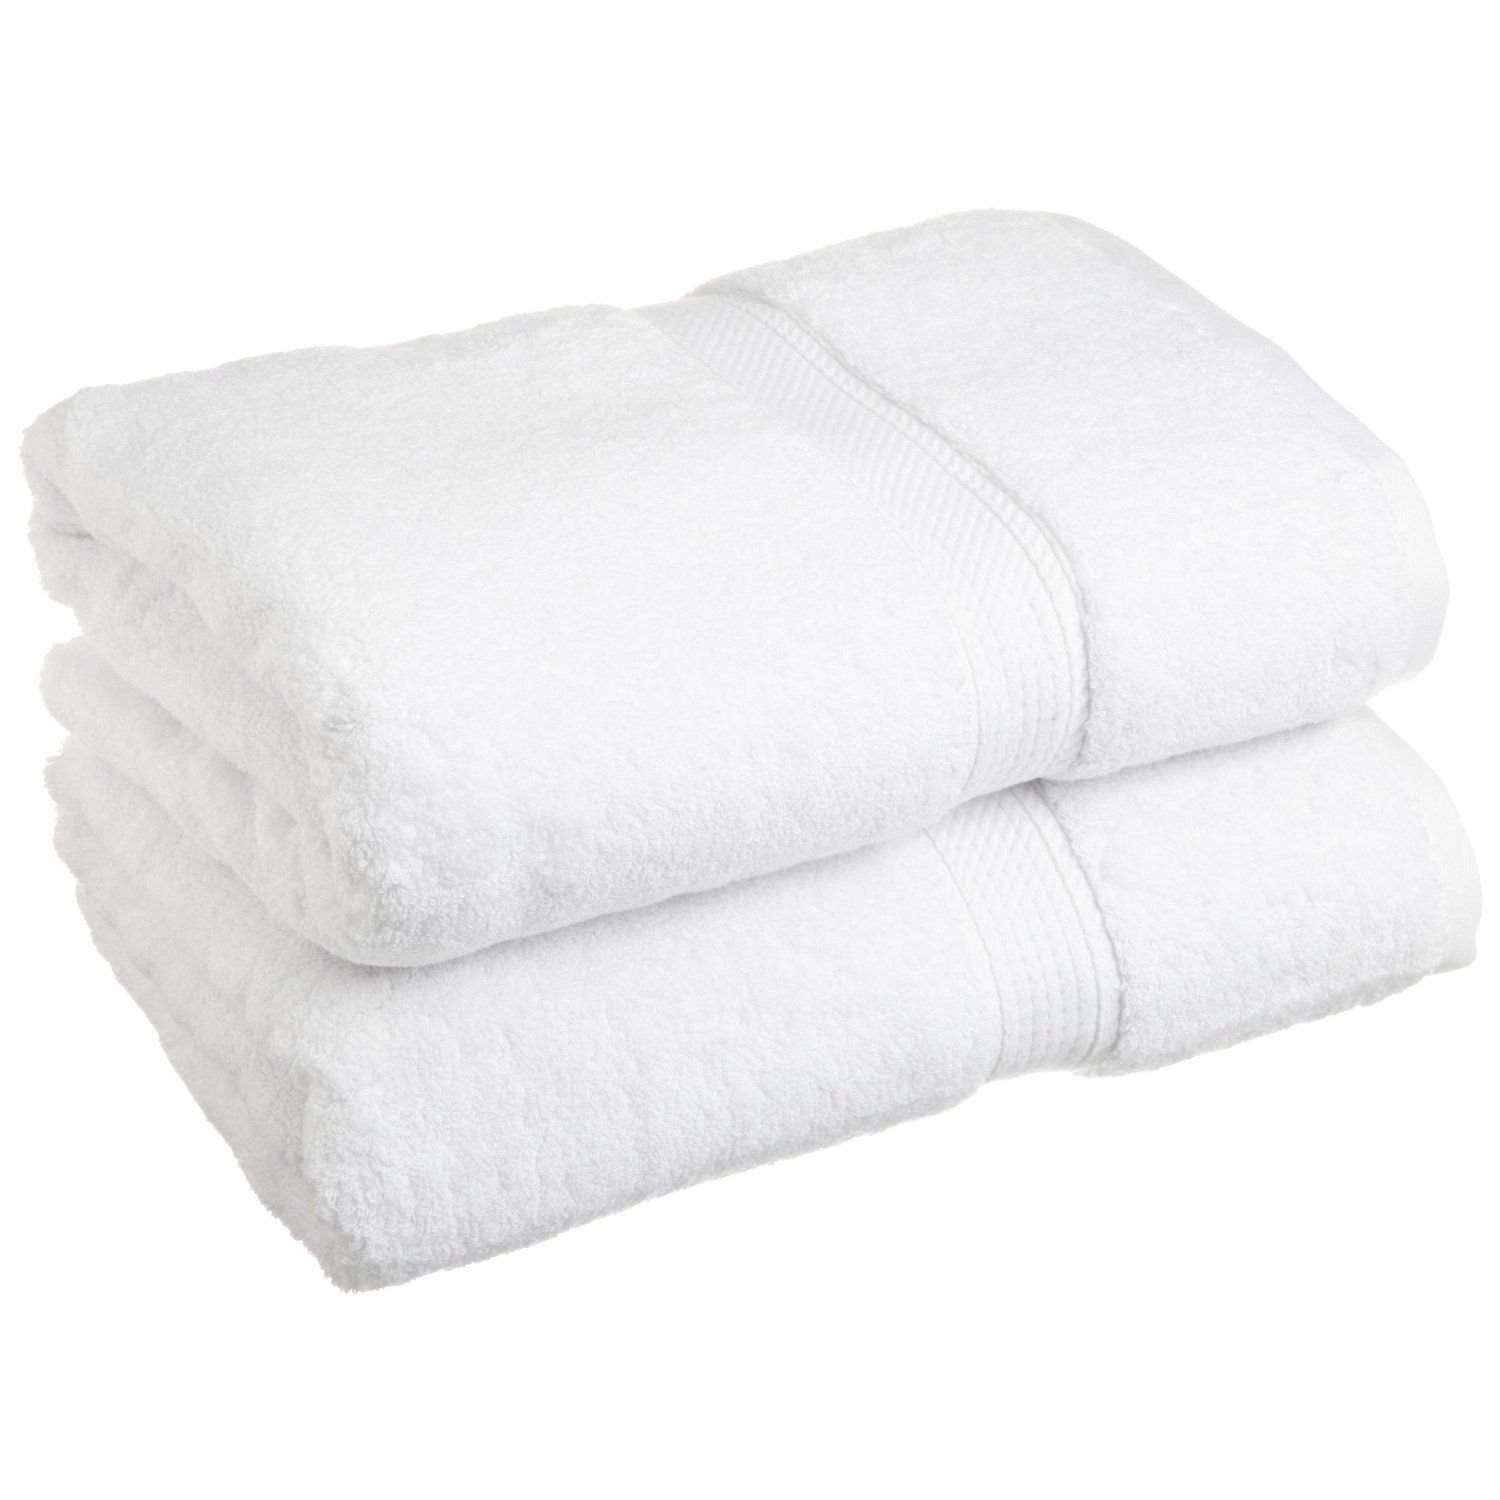 700 GSM Luxury Bathroom Towels, Made of 100% Premium Long-Staple Combed Cotton, Set of 2 Hotel & Spa Quality Bath Towels - White, 30'' x 60'' each (White)